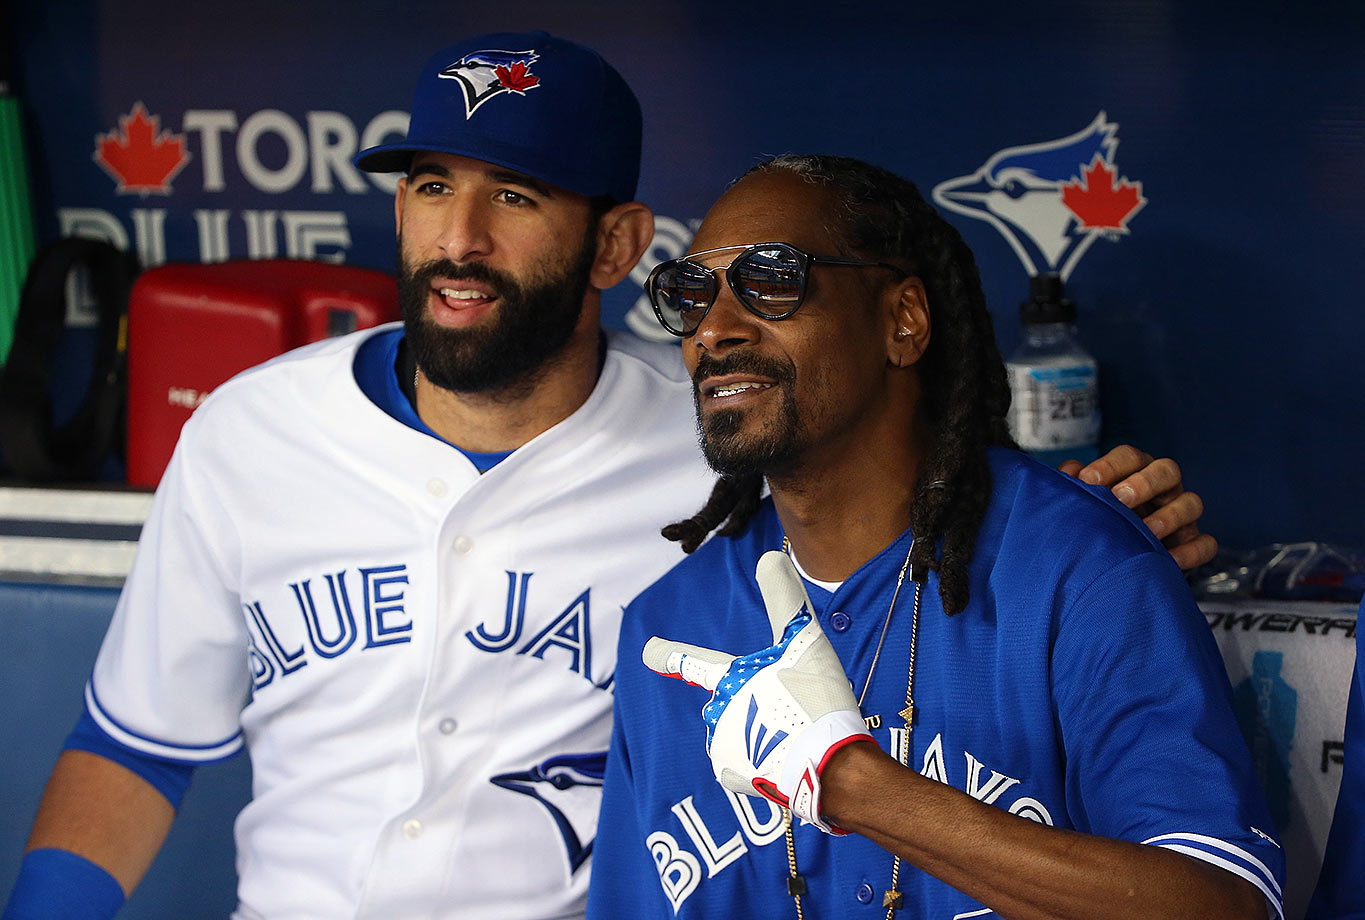 Snoop Dogg poses with Toronto Blue Jays right fielder Jose Bautista in the dugout before throwing out the first pitch for the Blue Jays game against the Miami Marlins on June 9, 2015 at Rogers Centre in Toronto.